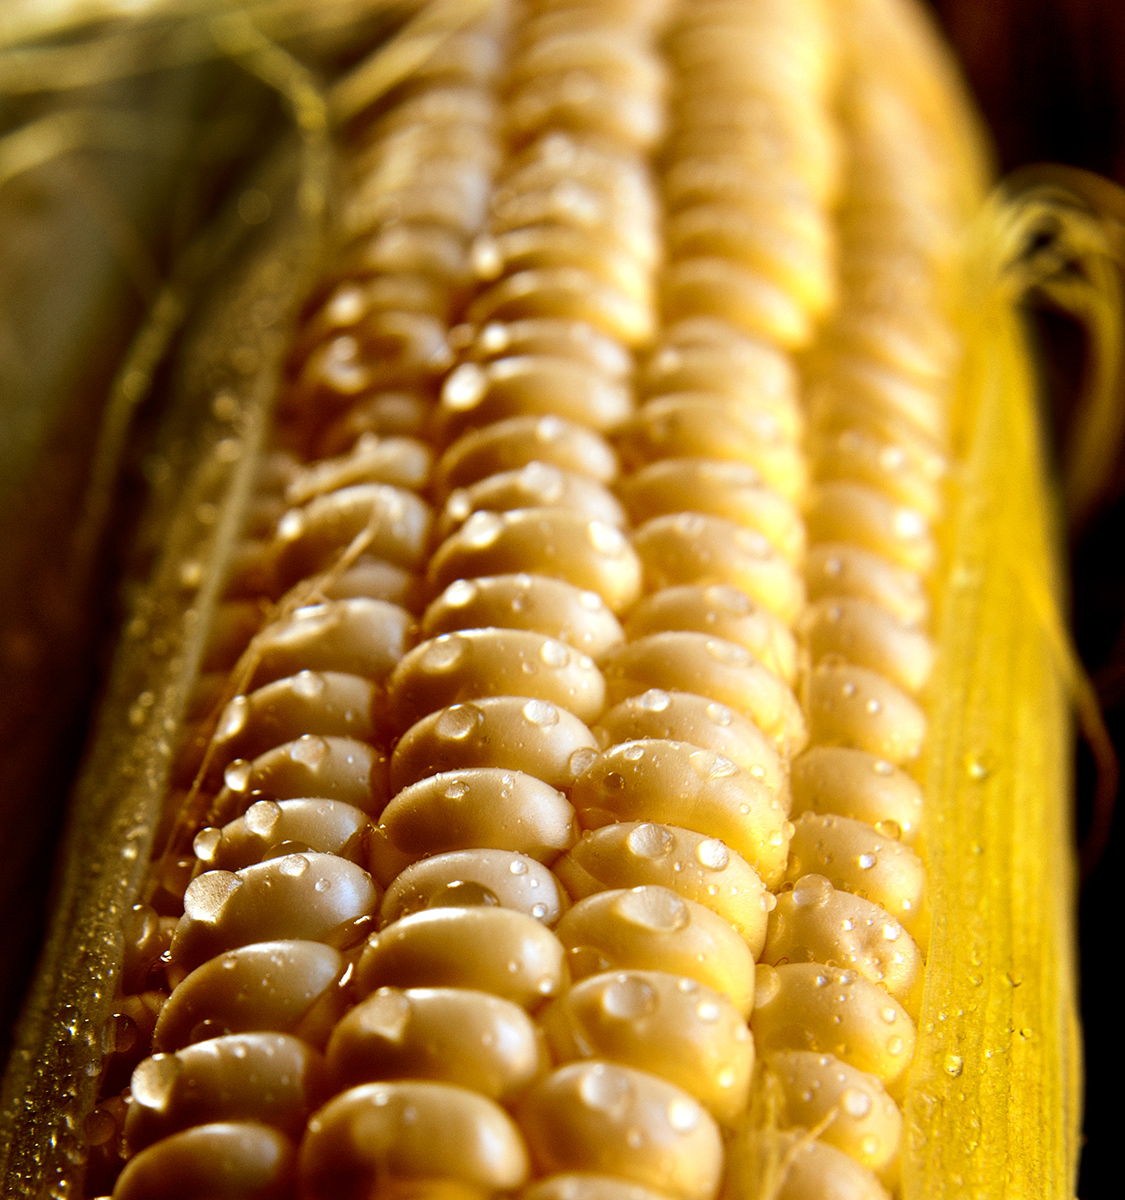 Corn-Carl Kravats Food Photography